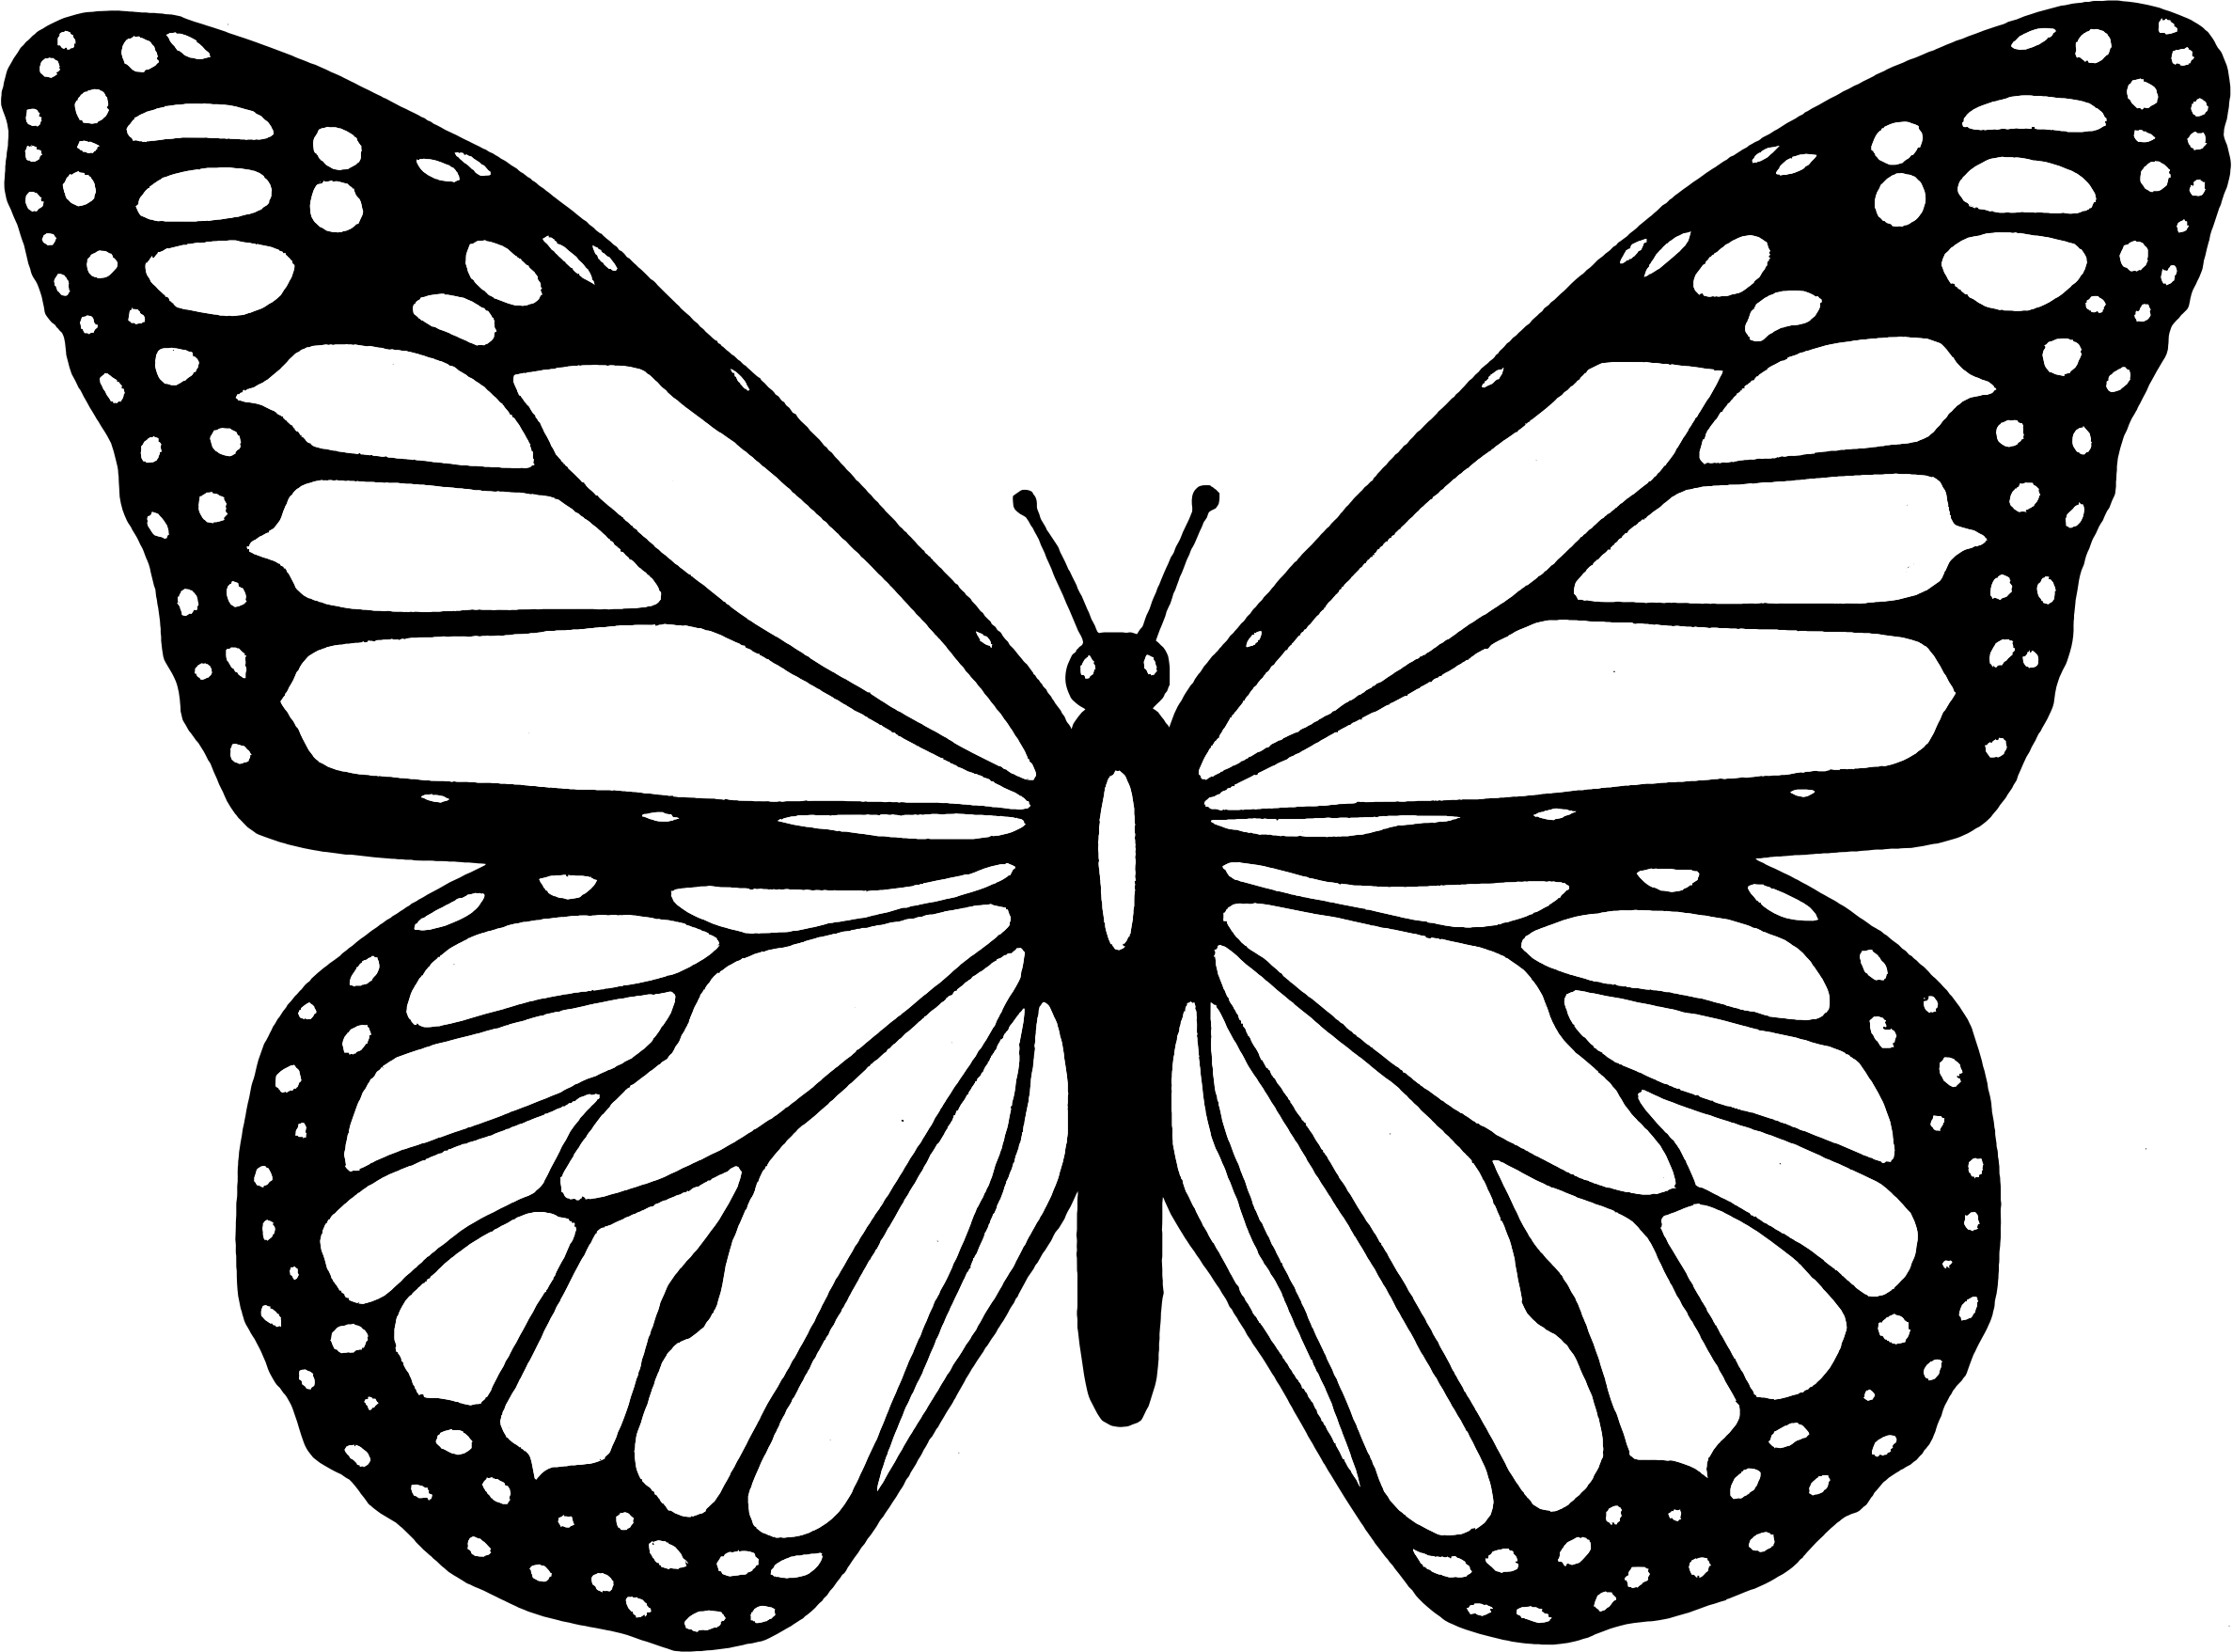 Clip art black and white image freeuse library Clipart - Black And White Butterfly image freeuse library